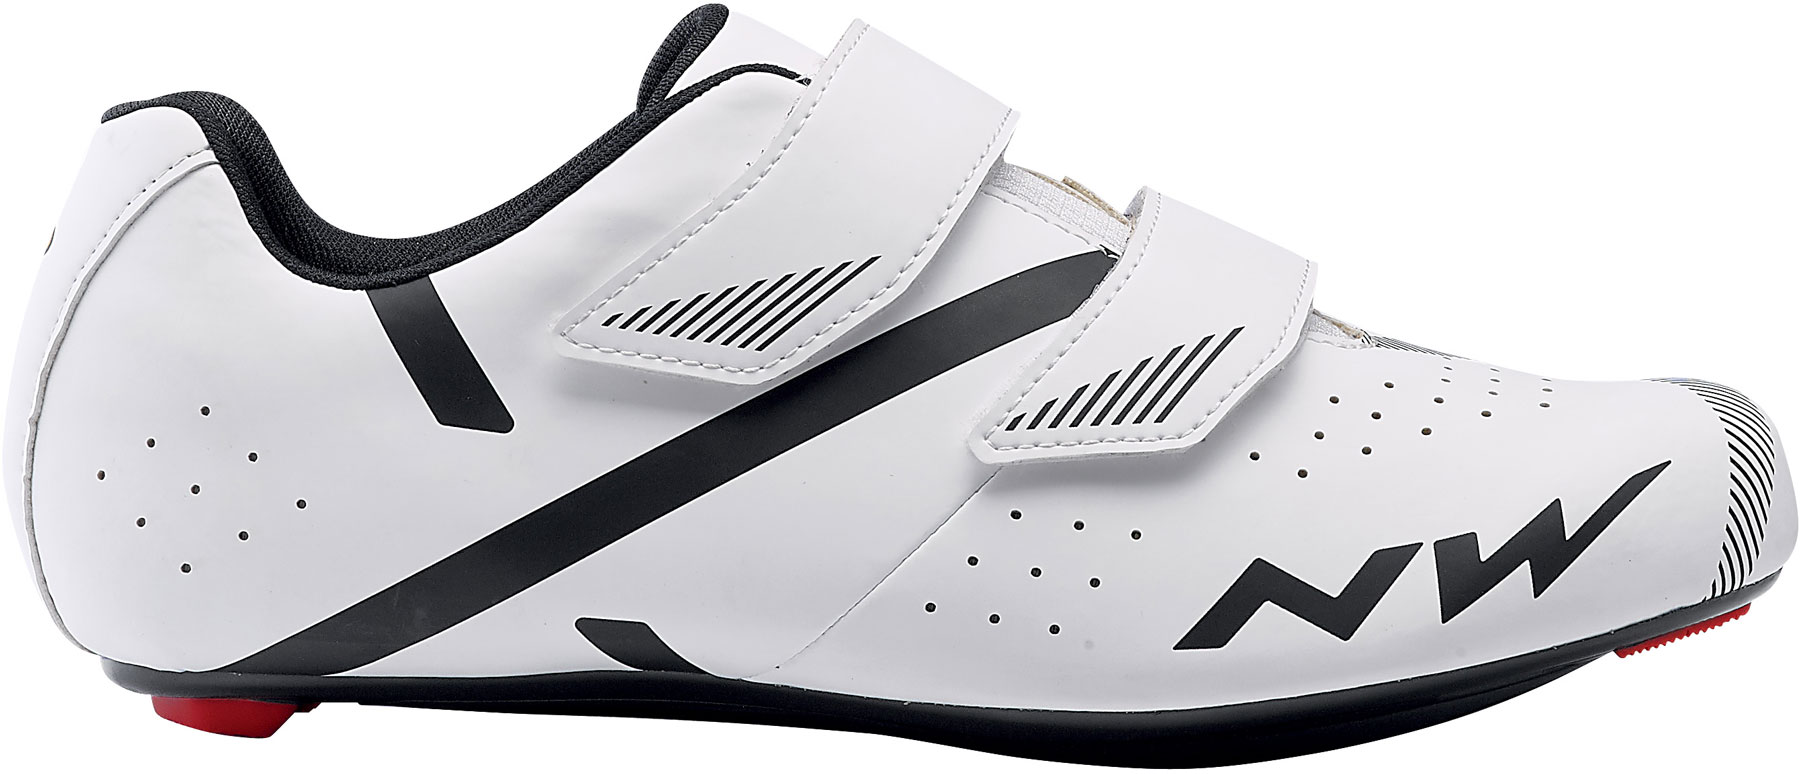 Northwave Jet 2 Road Shoes   Cycling Shoes